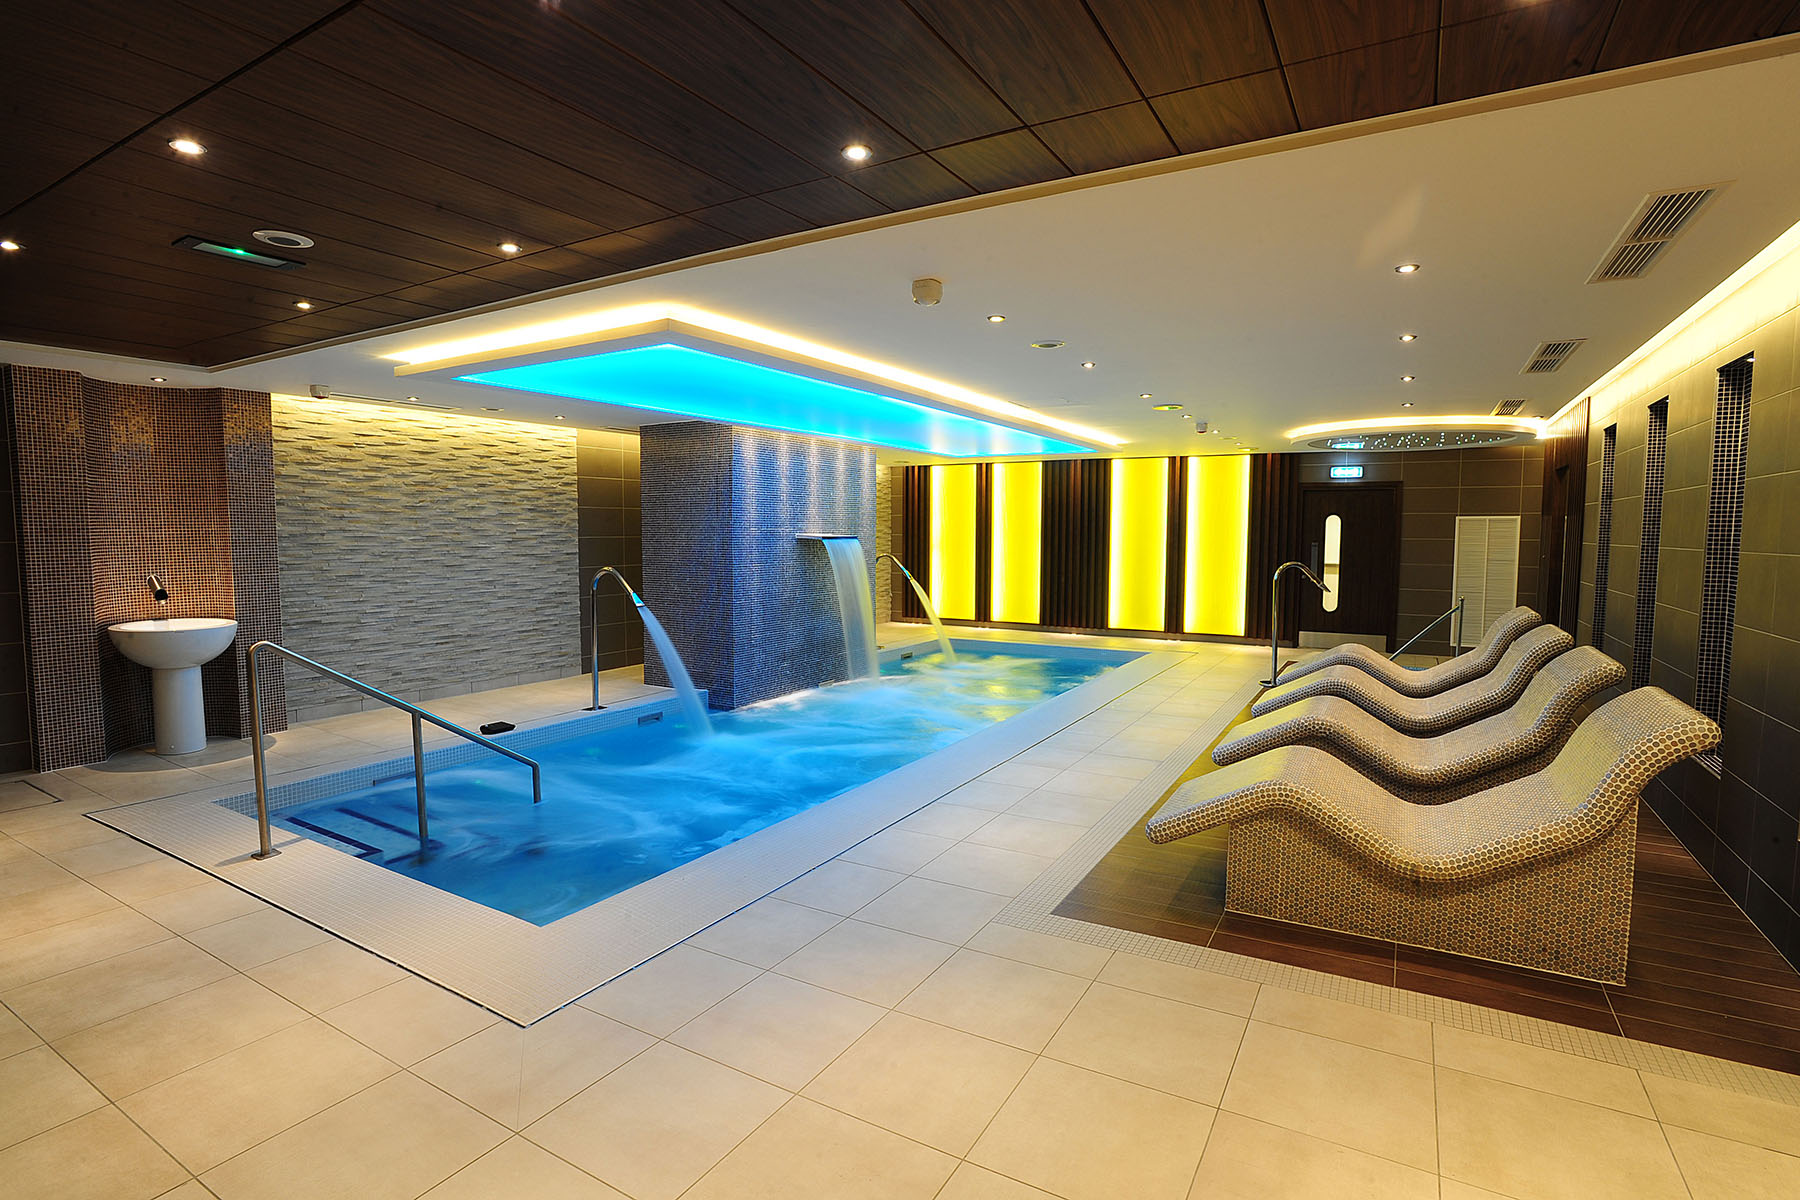 Antrim forum spa rpp architects ltd belfast architecture interiors planning - Salon architecture ...